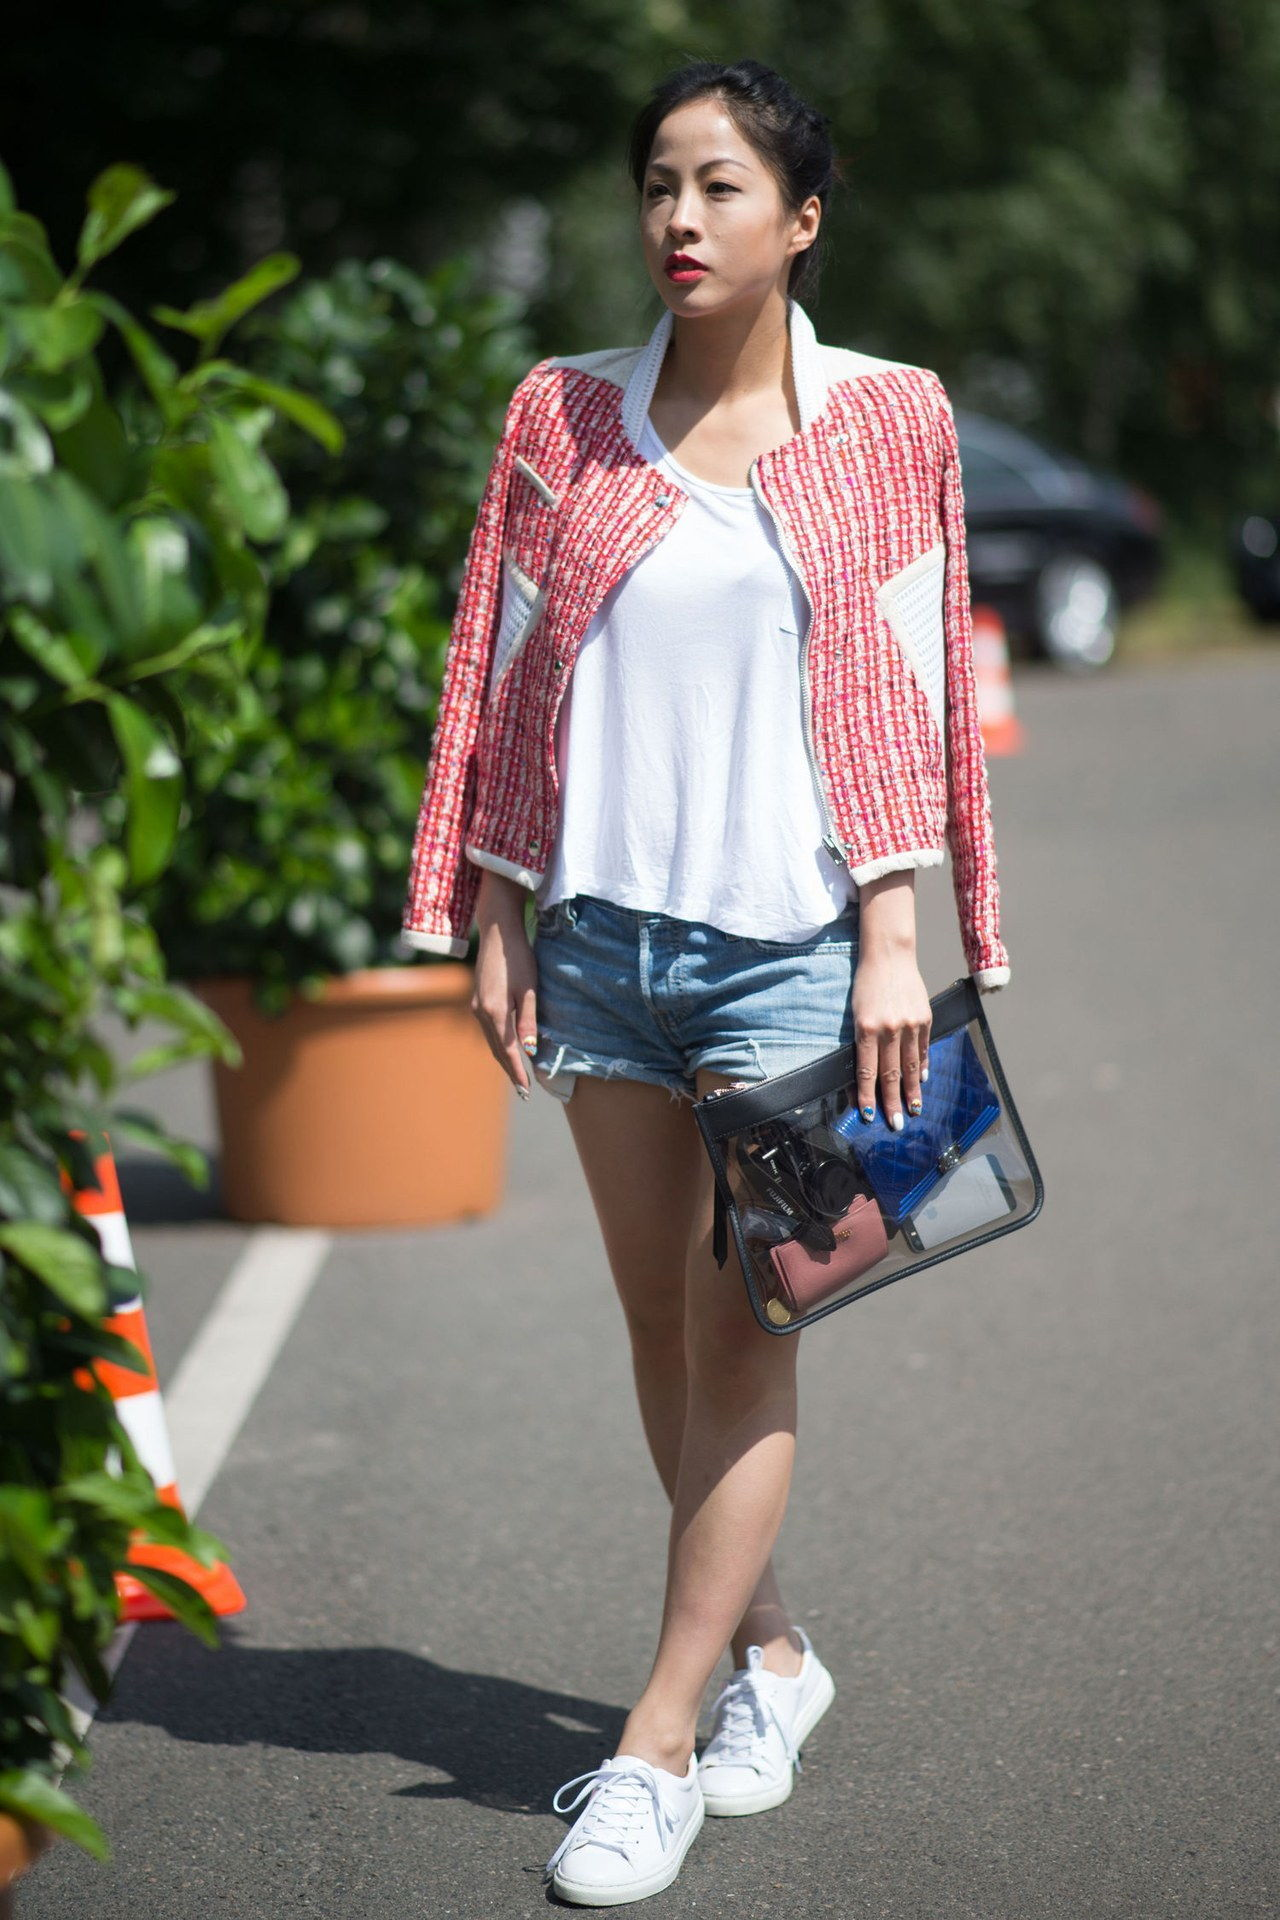 Pariisi street style tweed jacket cut offs